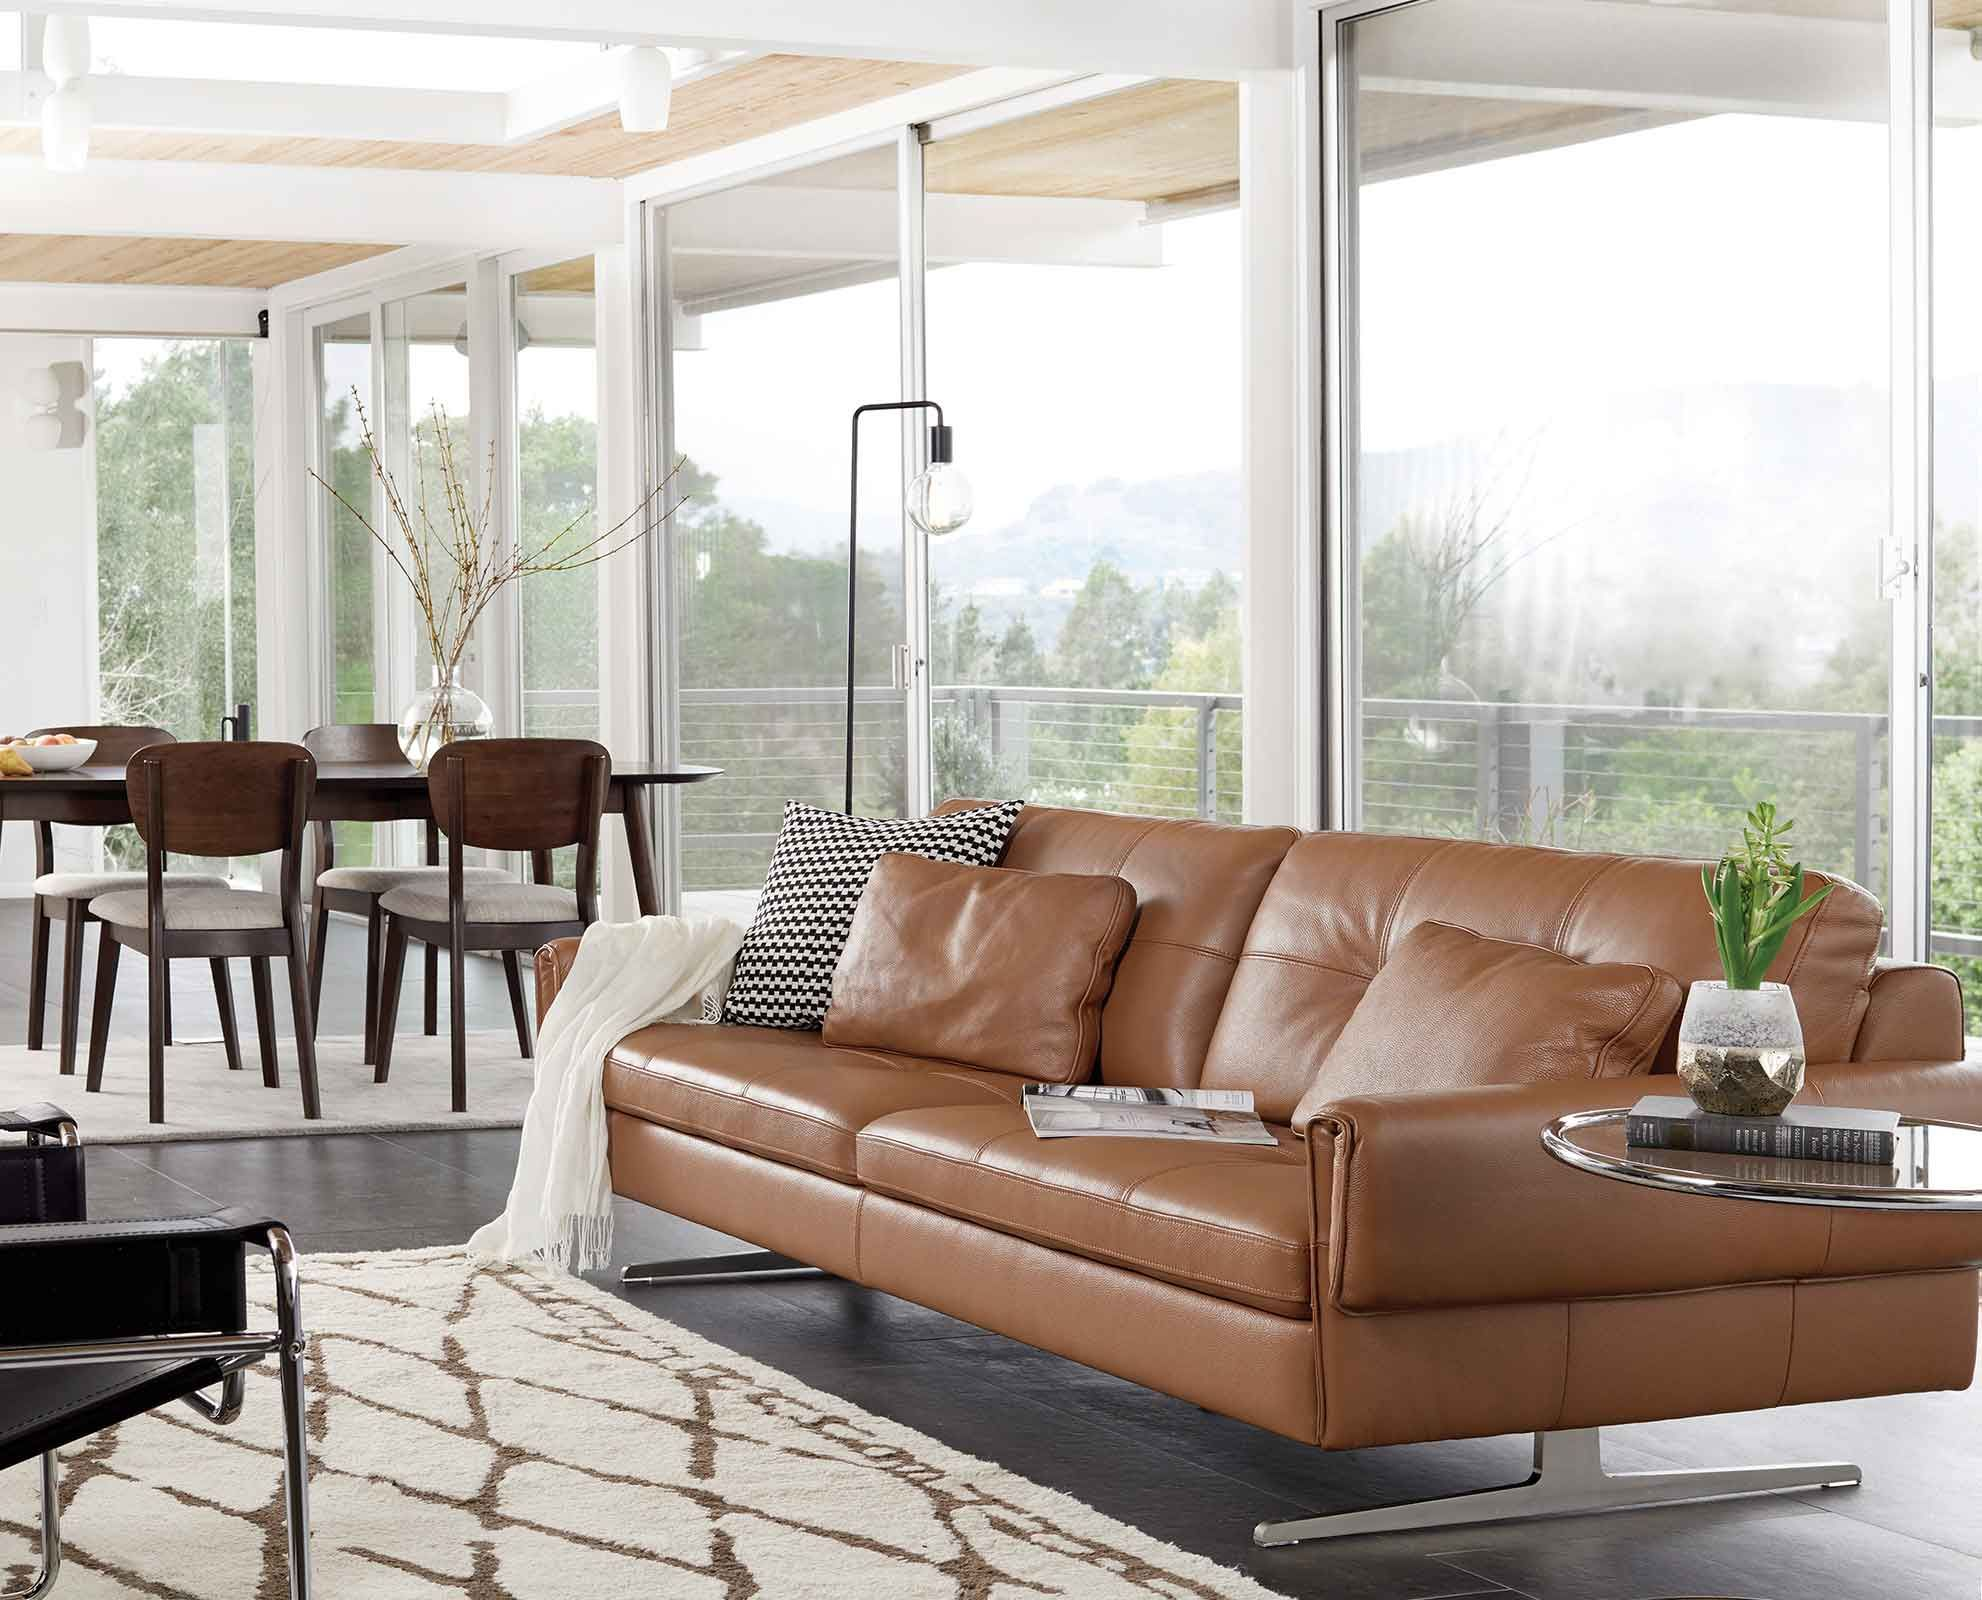 Dania Distinguished Style Characterizes The Clementi Sofa Featuring A Unique Profile With Detailed Stitching Sofa Design Top Grain Leather Sofa Leather Sofa